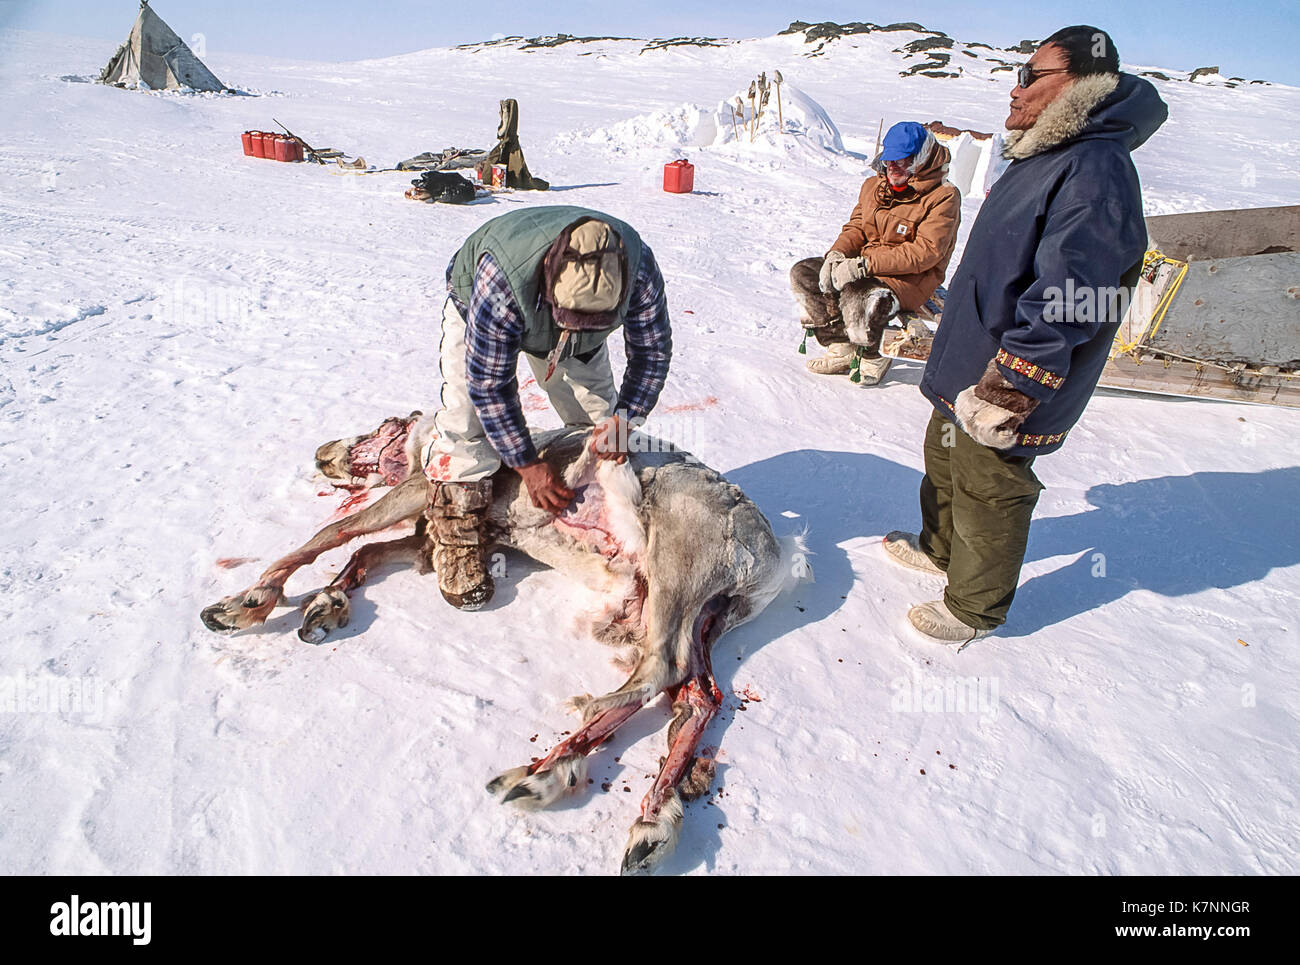 Inuit Elder Skins Freshly Killed Caribou It Was Hunted By Dogsled Using The Sled